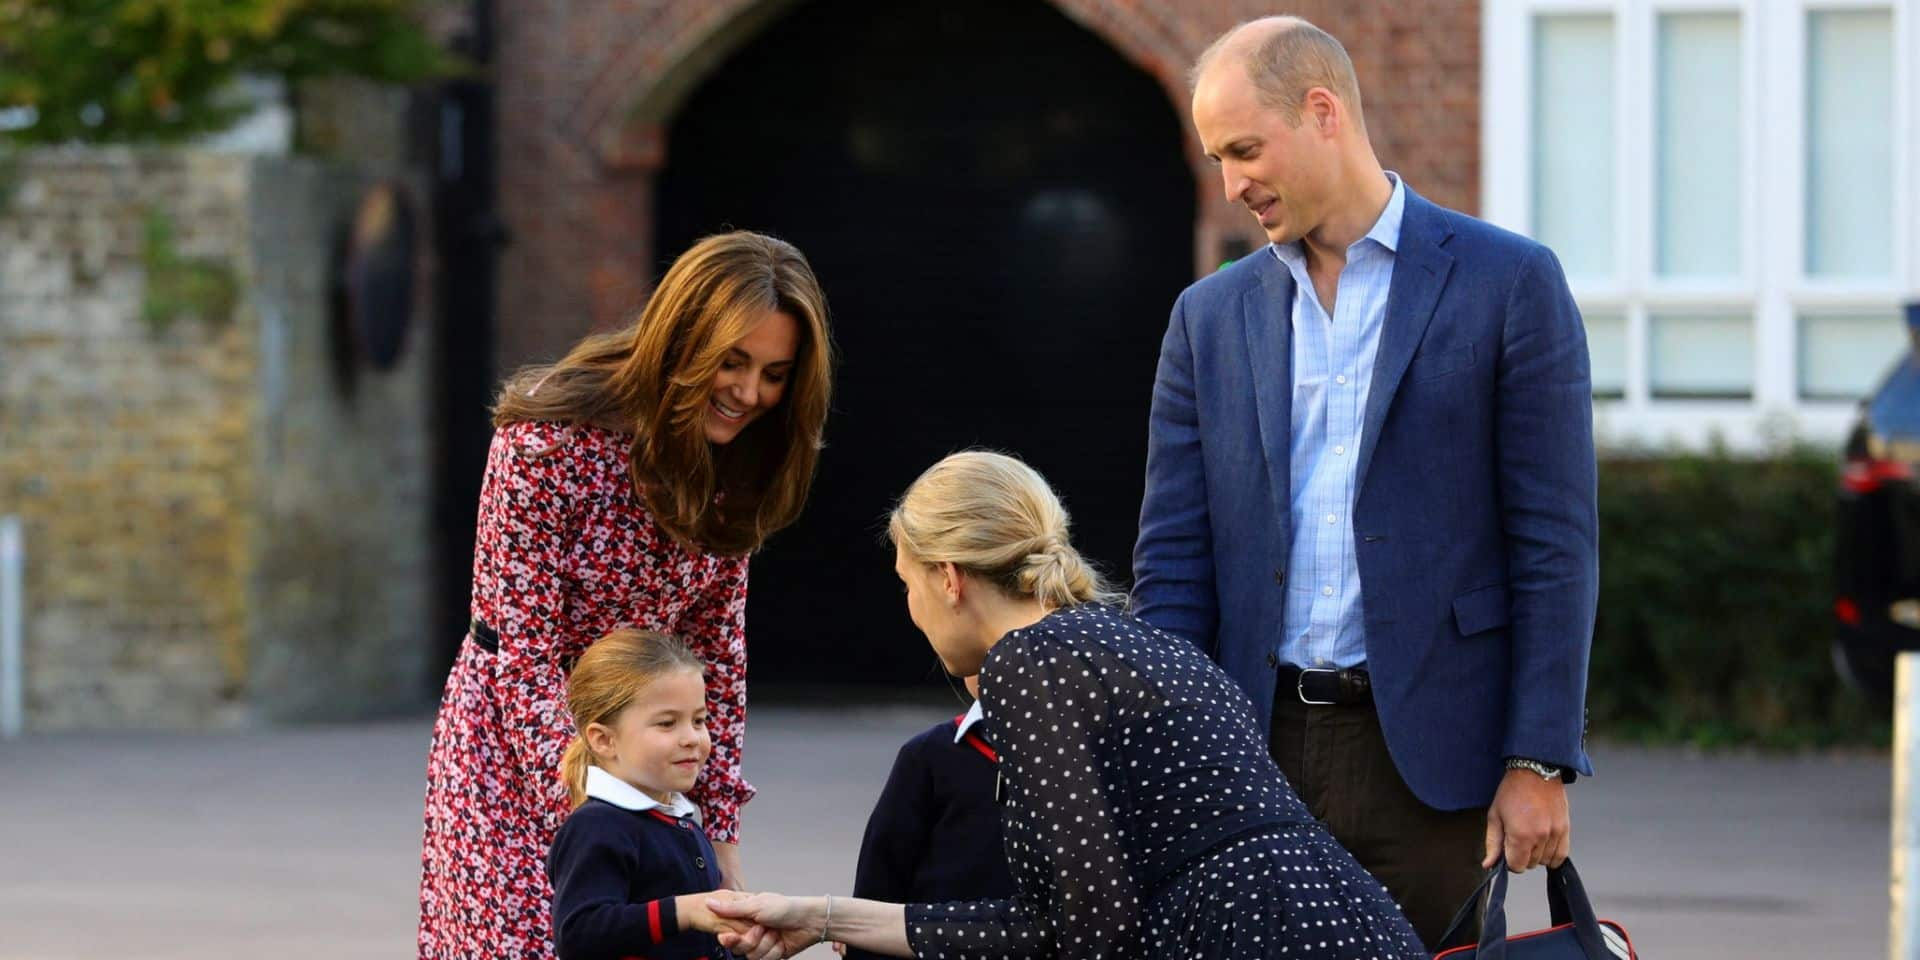 Kate Middleton: cet adorable tic dont la princesse Charlotte a hérité